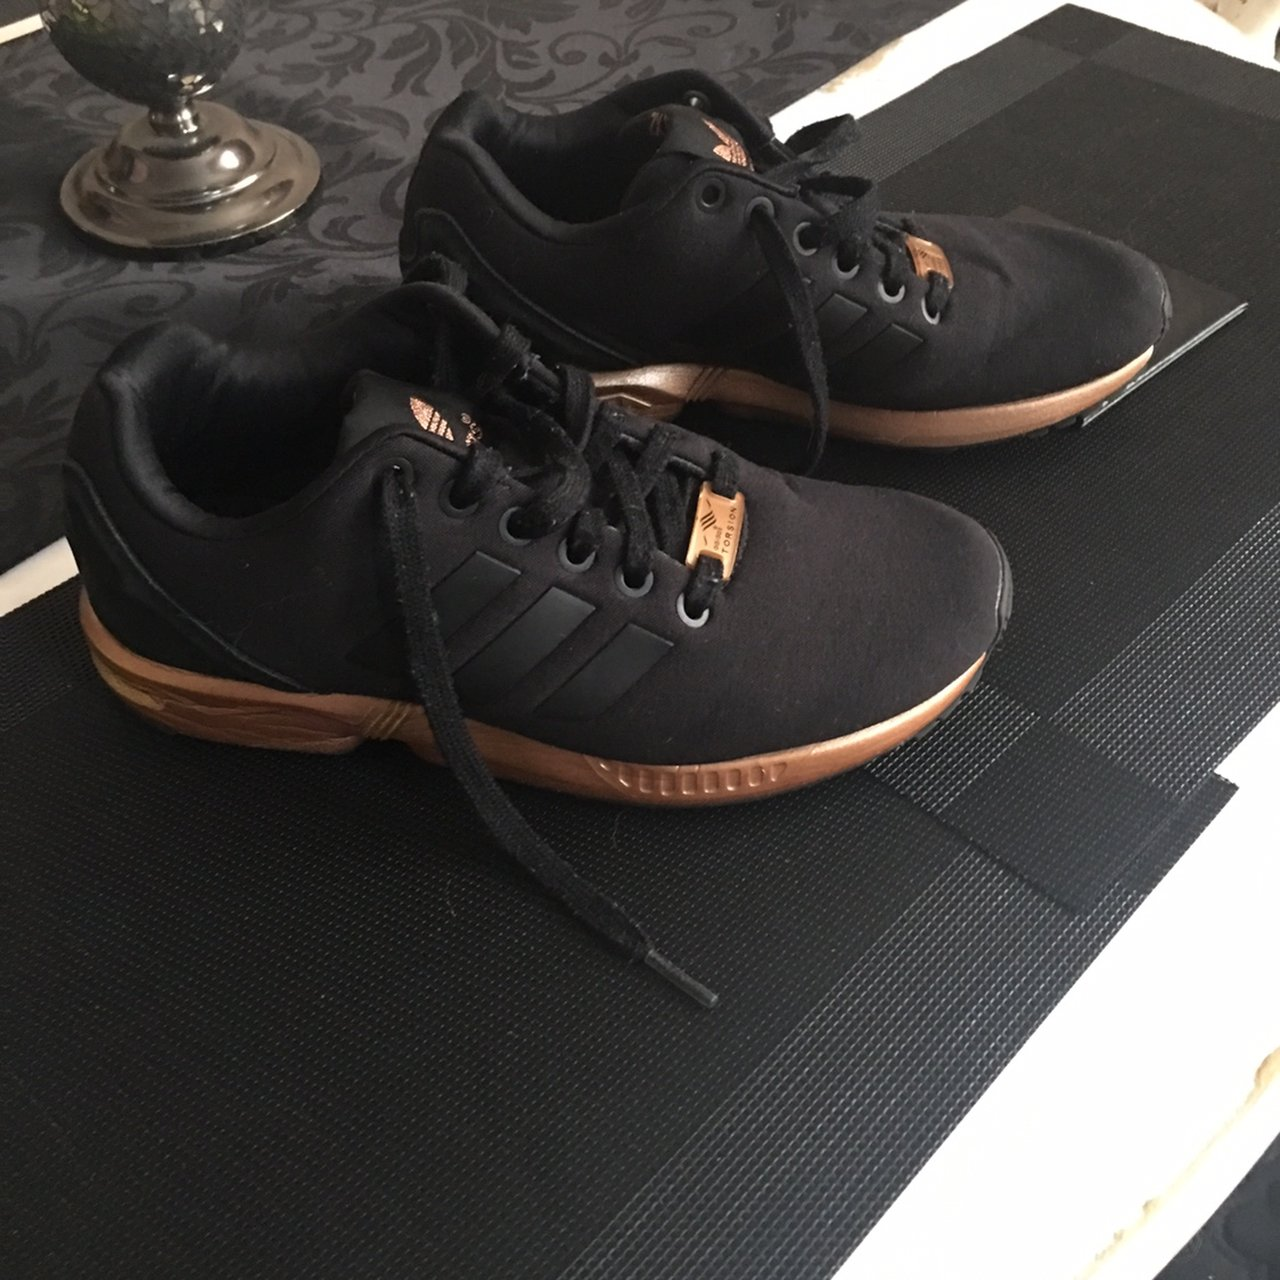 6e2e7b5445d56 ladies/teens Adidas trainers. Black material with rose gold - Depop